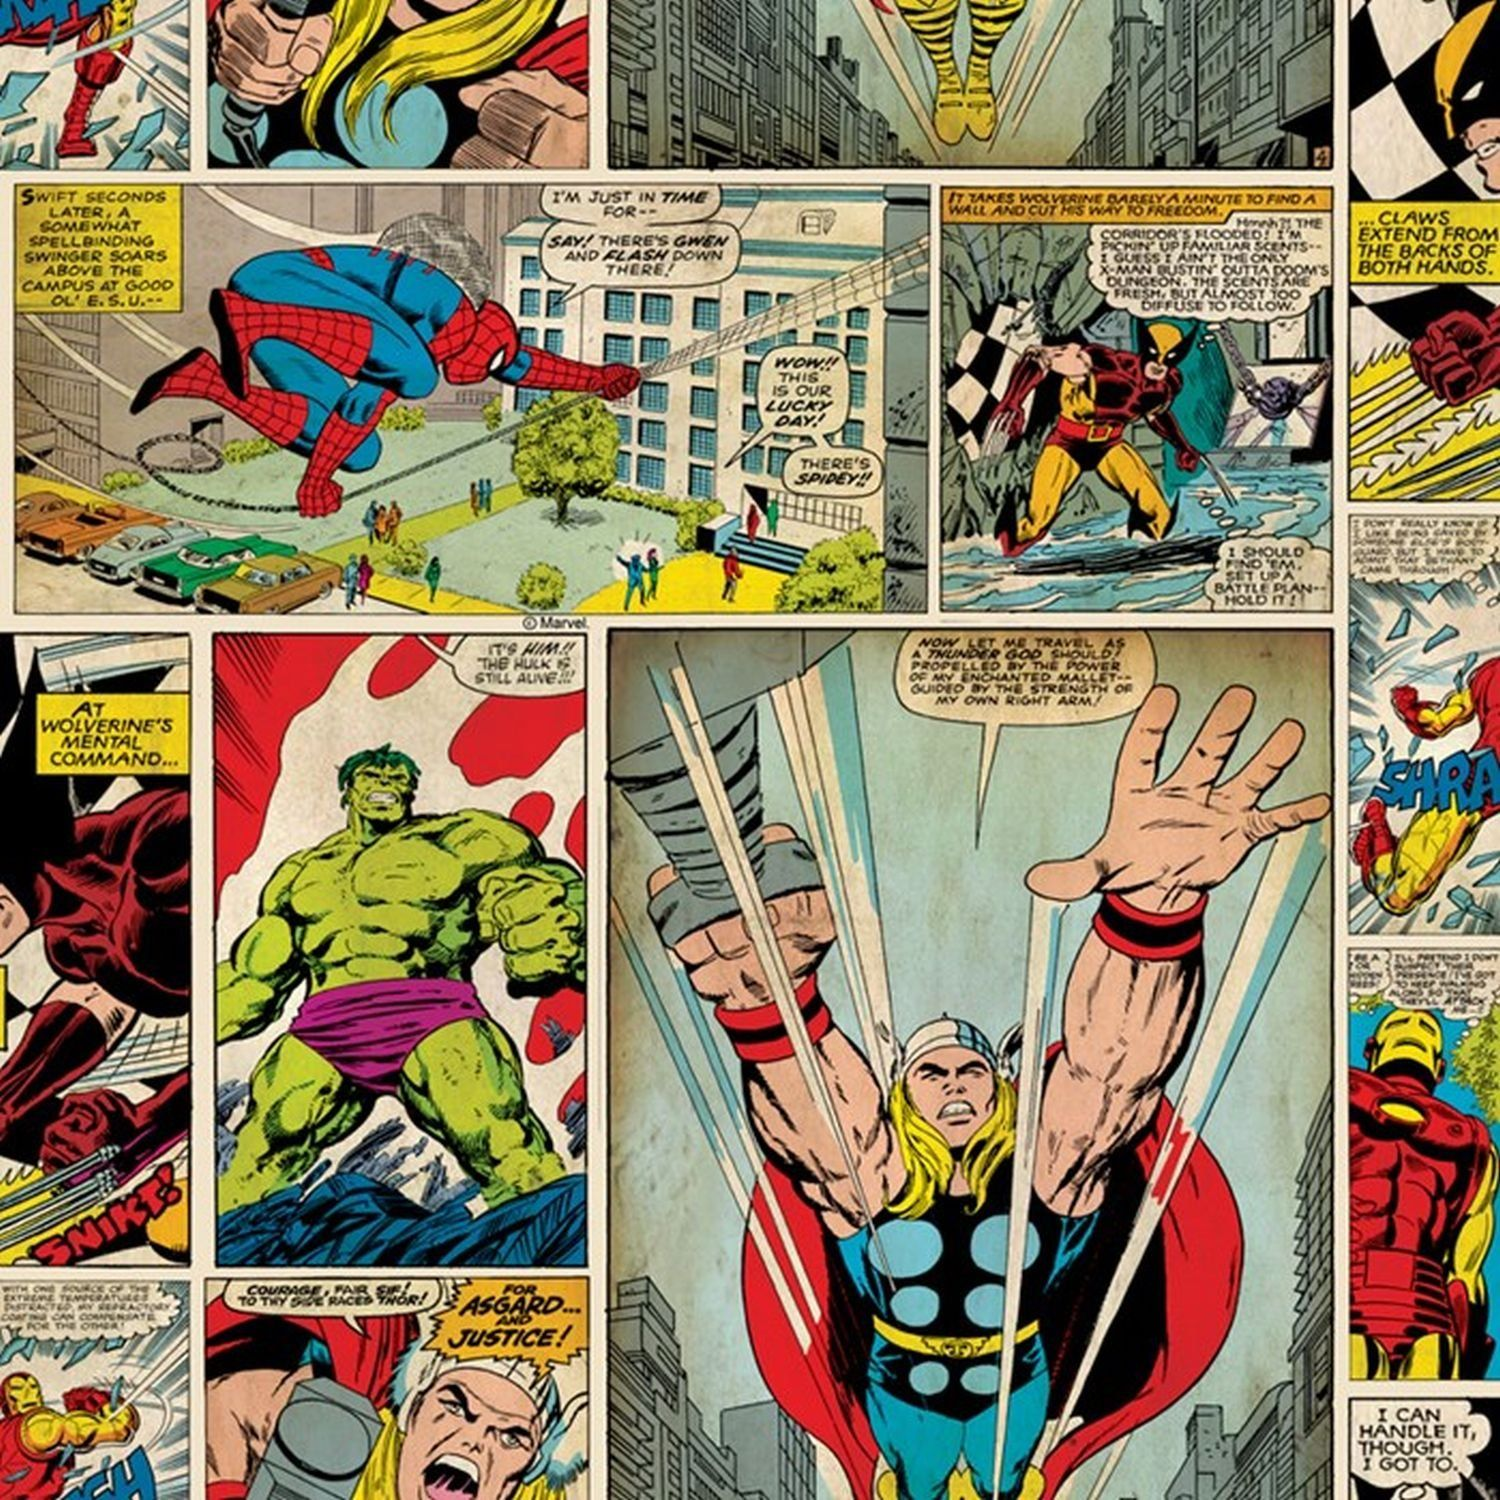 Marvel Comics Strip Wallpaper Amazoncouk Diy & Tools